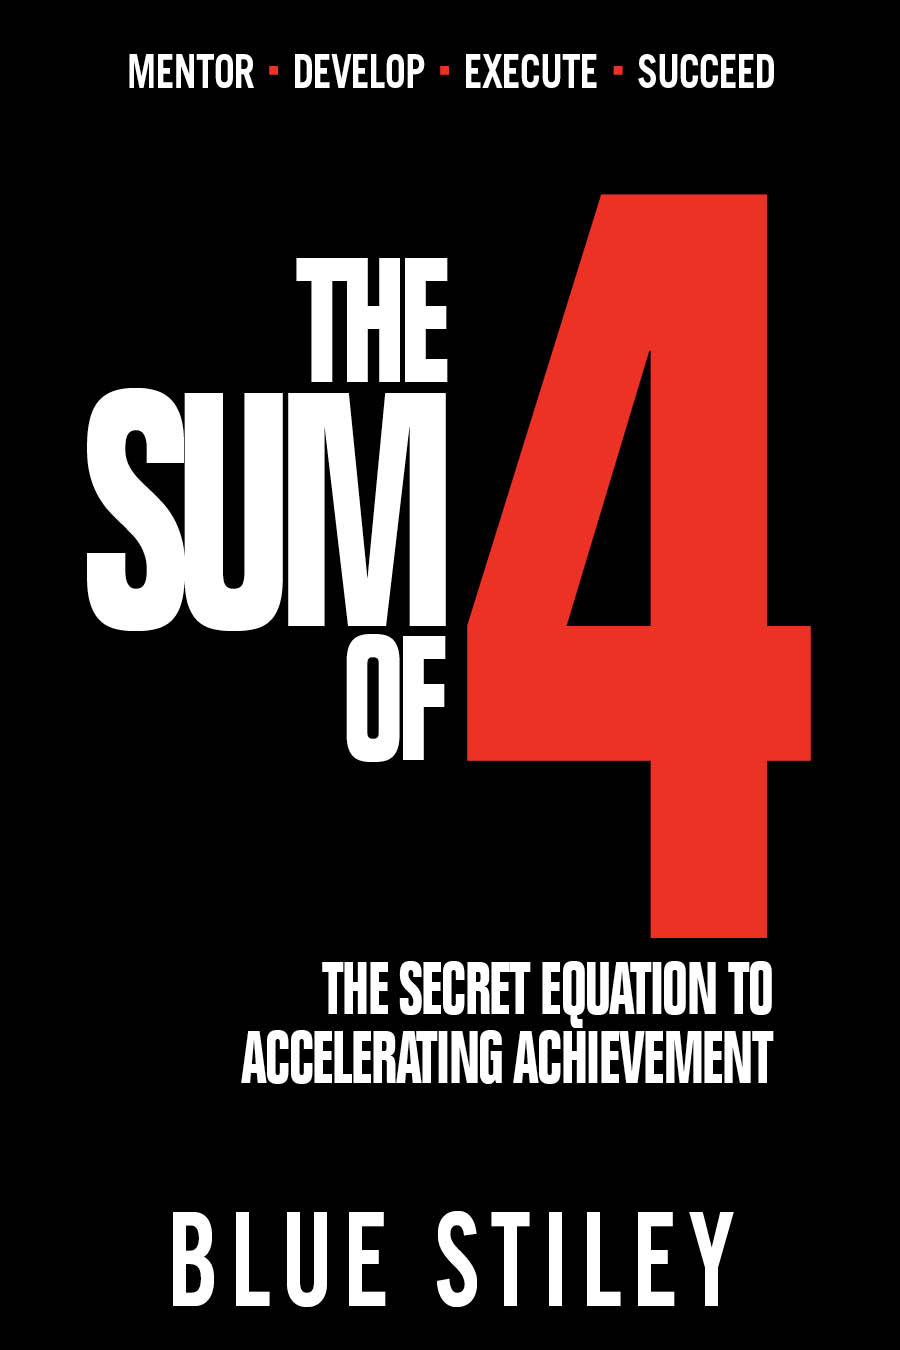 Secret Equation for Accelerating Achievement in any area